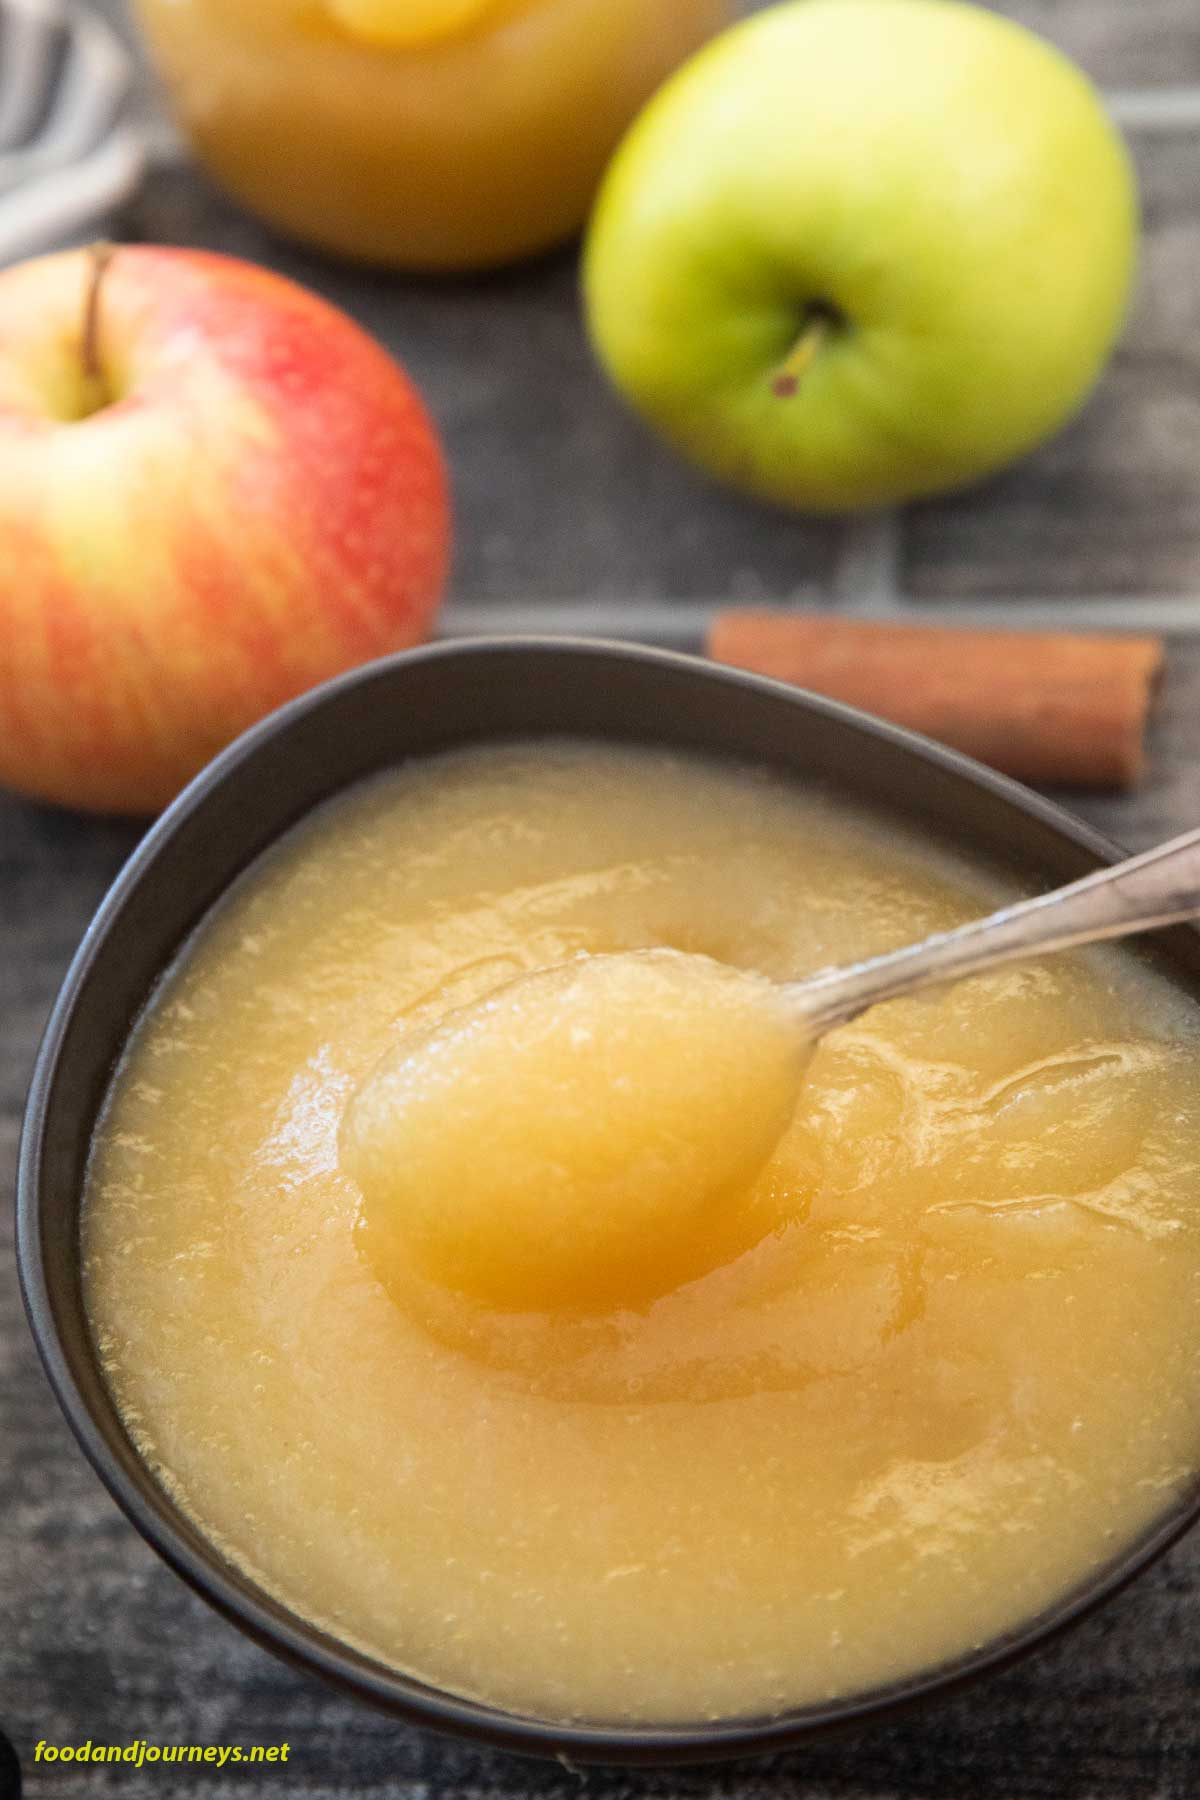 An overhead shot of apfelmus in a bowl, ready for serving, with a half stick of cinnamon and some apples on the side.